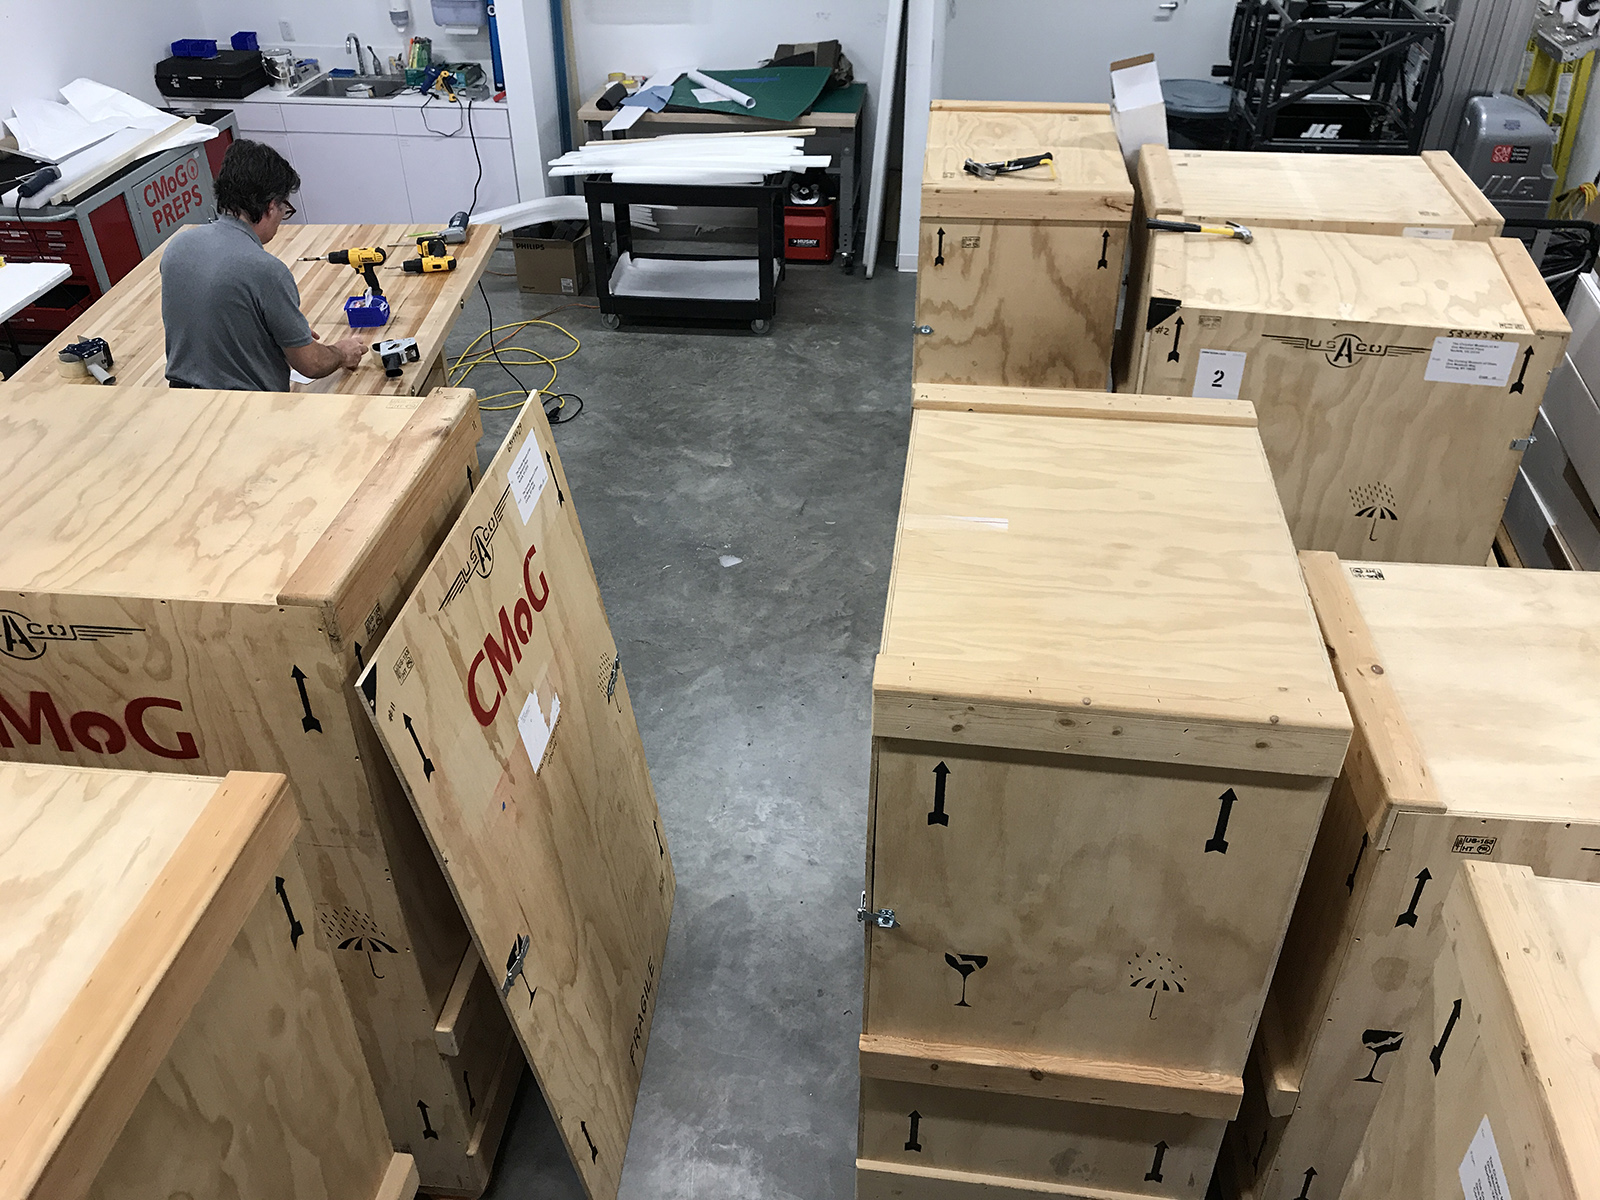 Overhead view for scale: Tom putting the final touches on the crates.